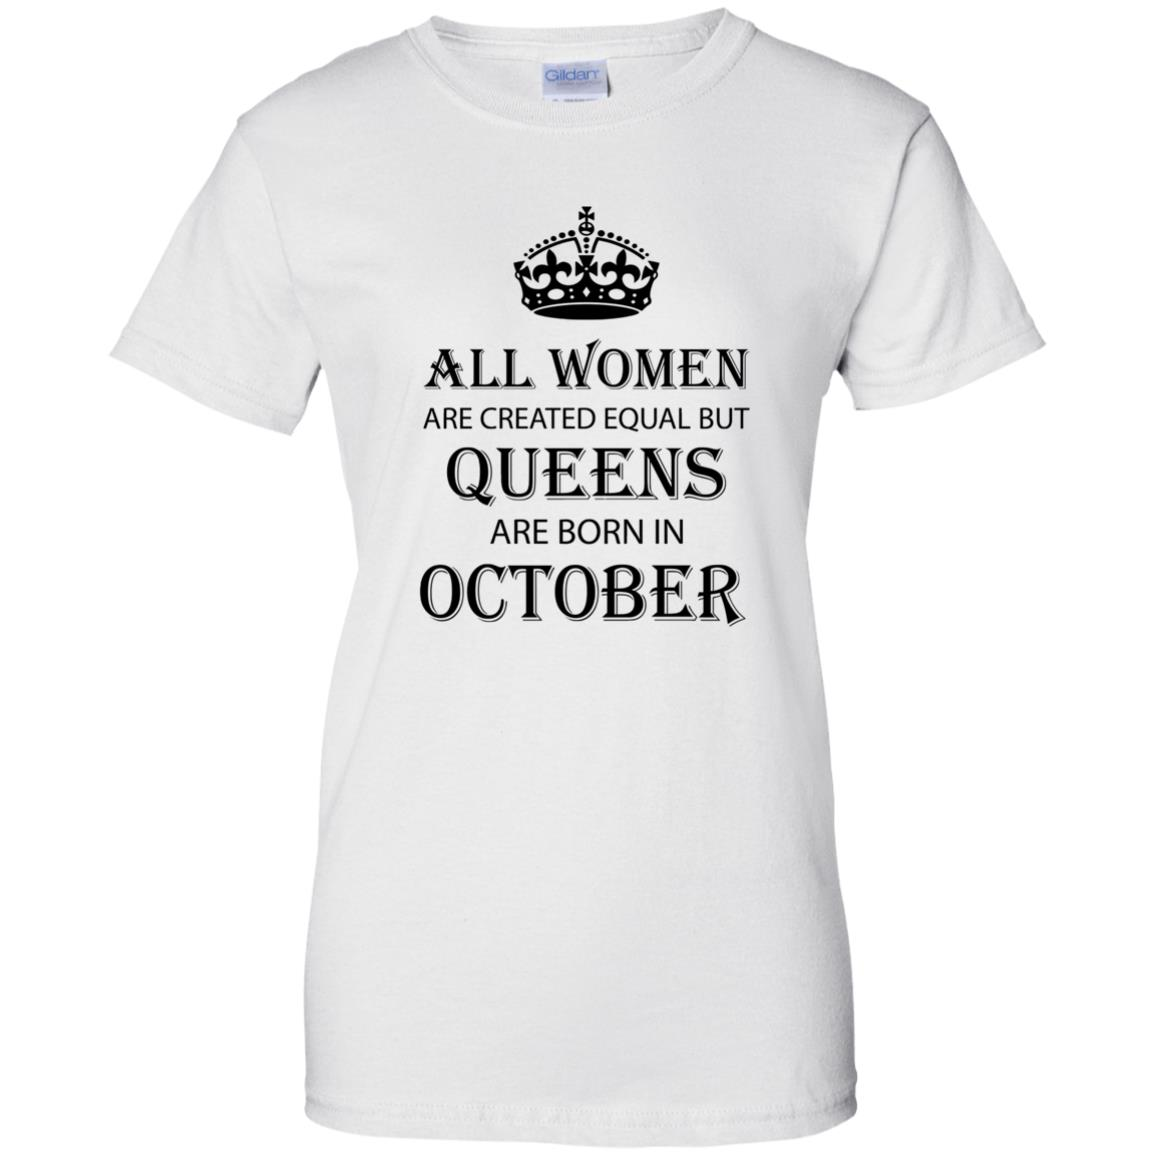 4e3e9789f All Women are created equal but Queens are born in October shirt, tank -  image